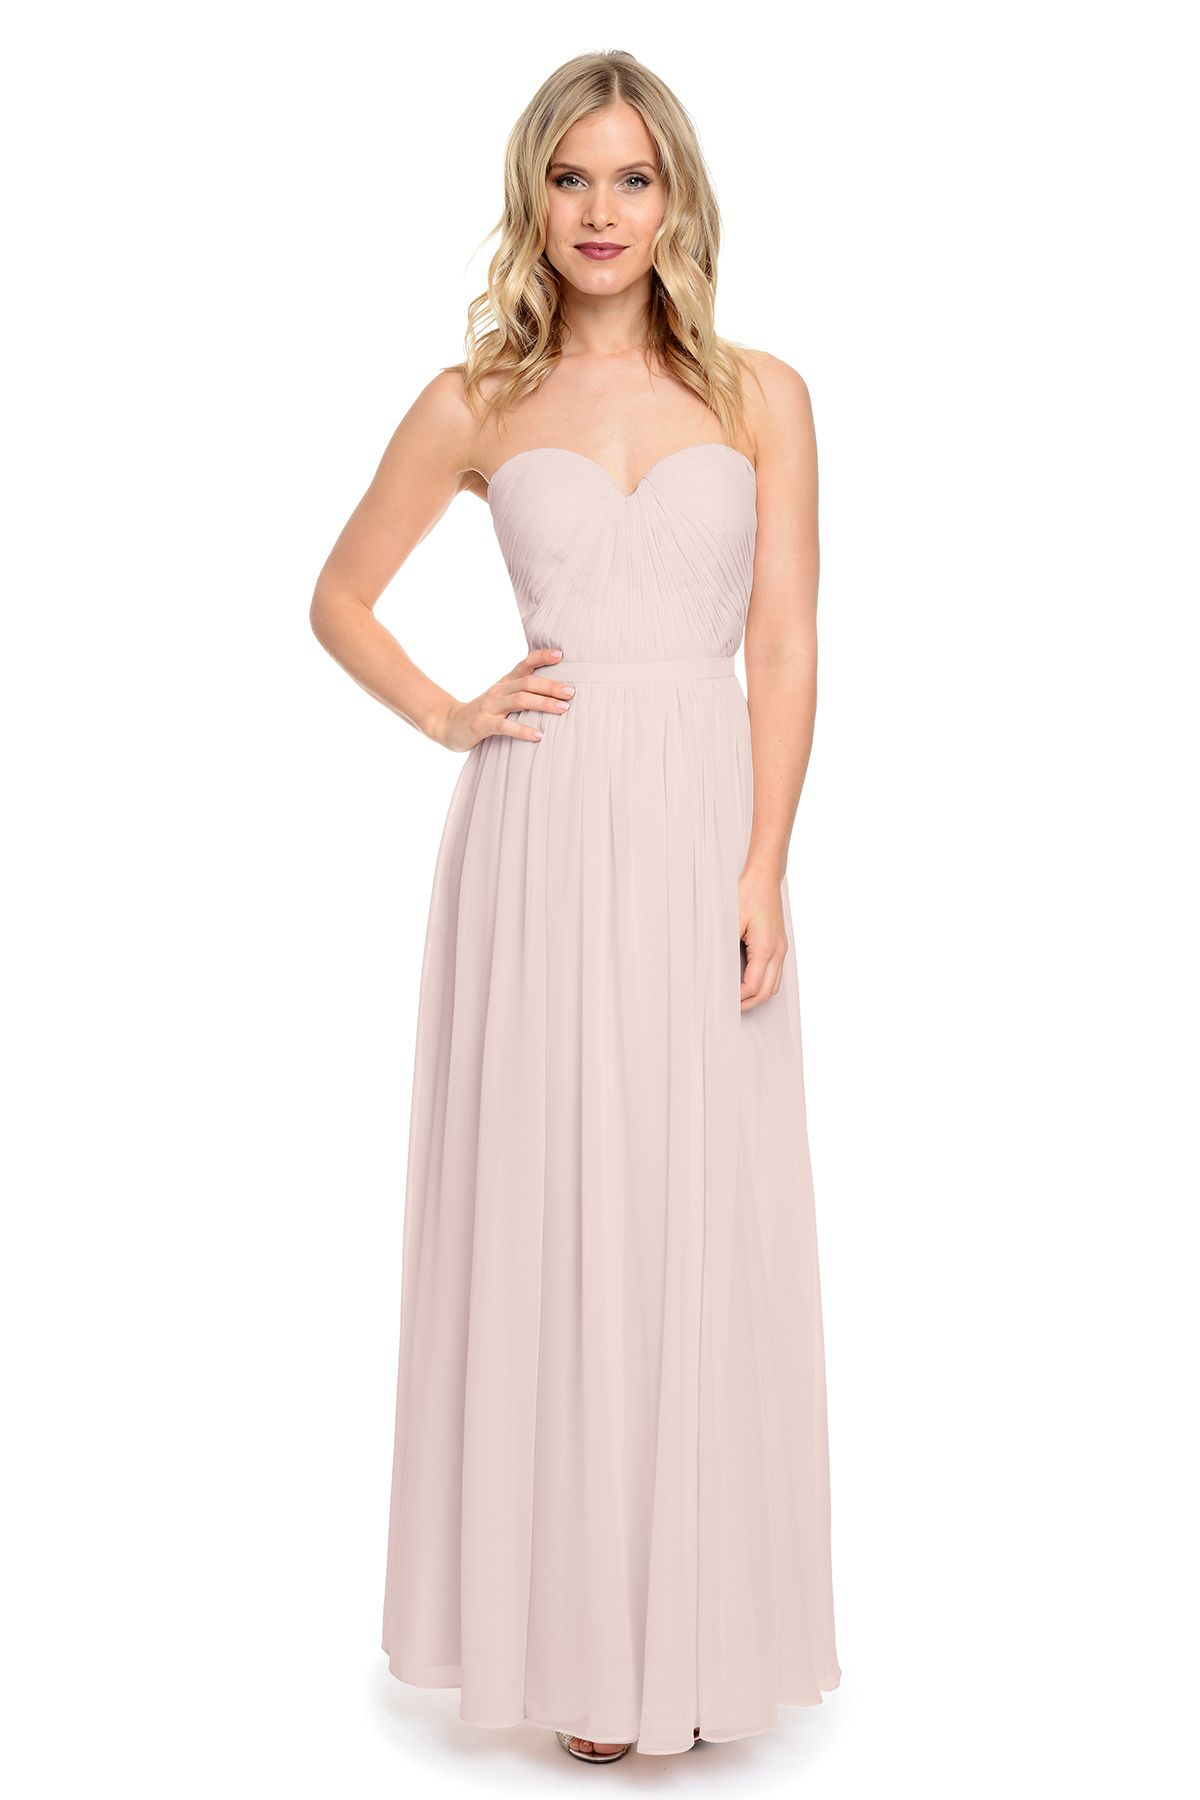 7ffcd978b54 Shop Dove   Dahlia Bridesmaid Dress - Hailey in Poly Chiffon at Weddington  Way. (Blush Champagne